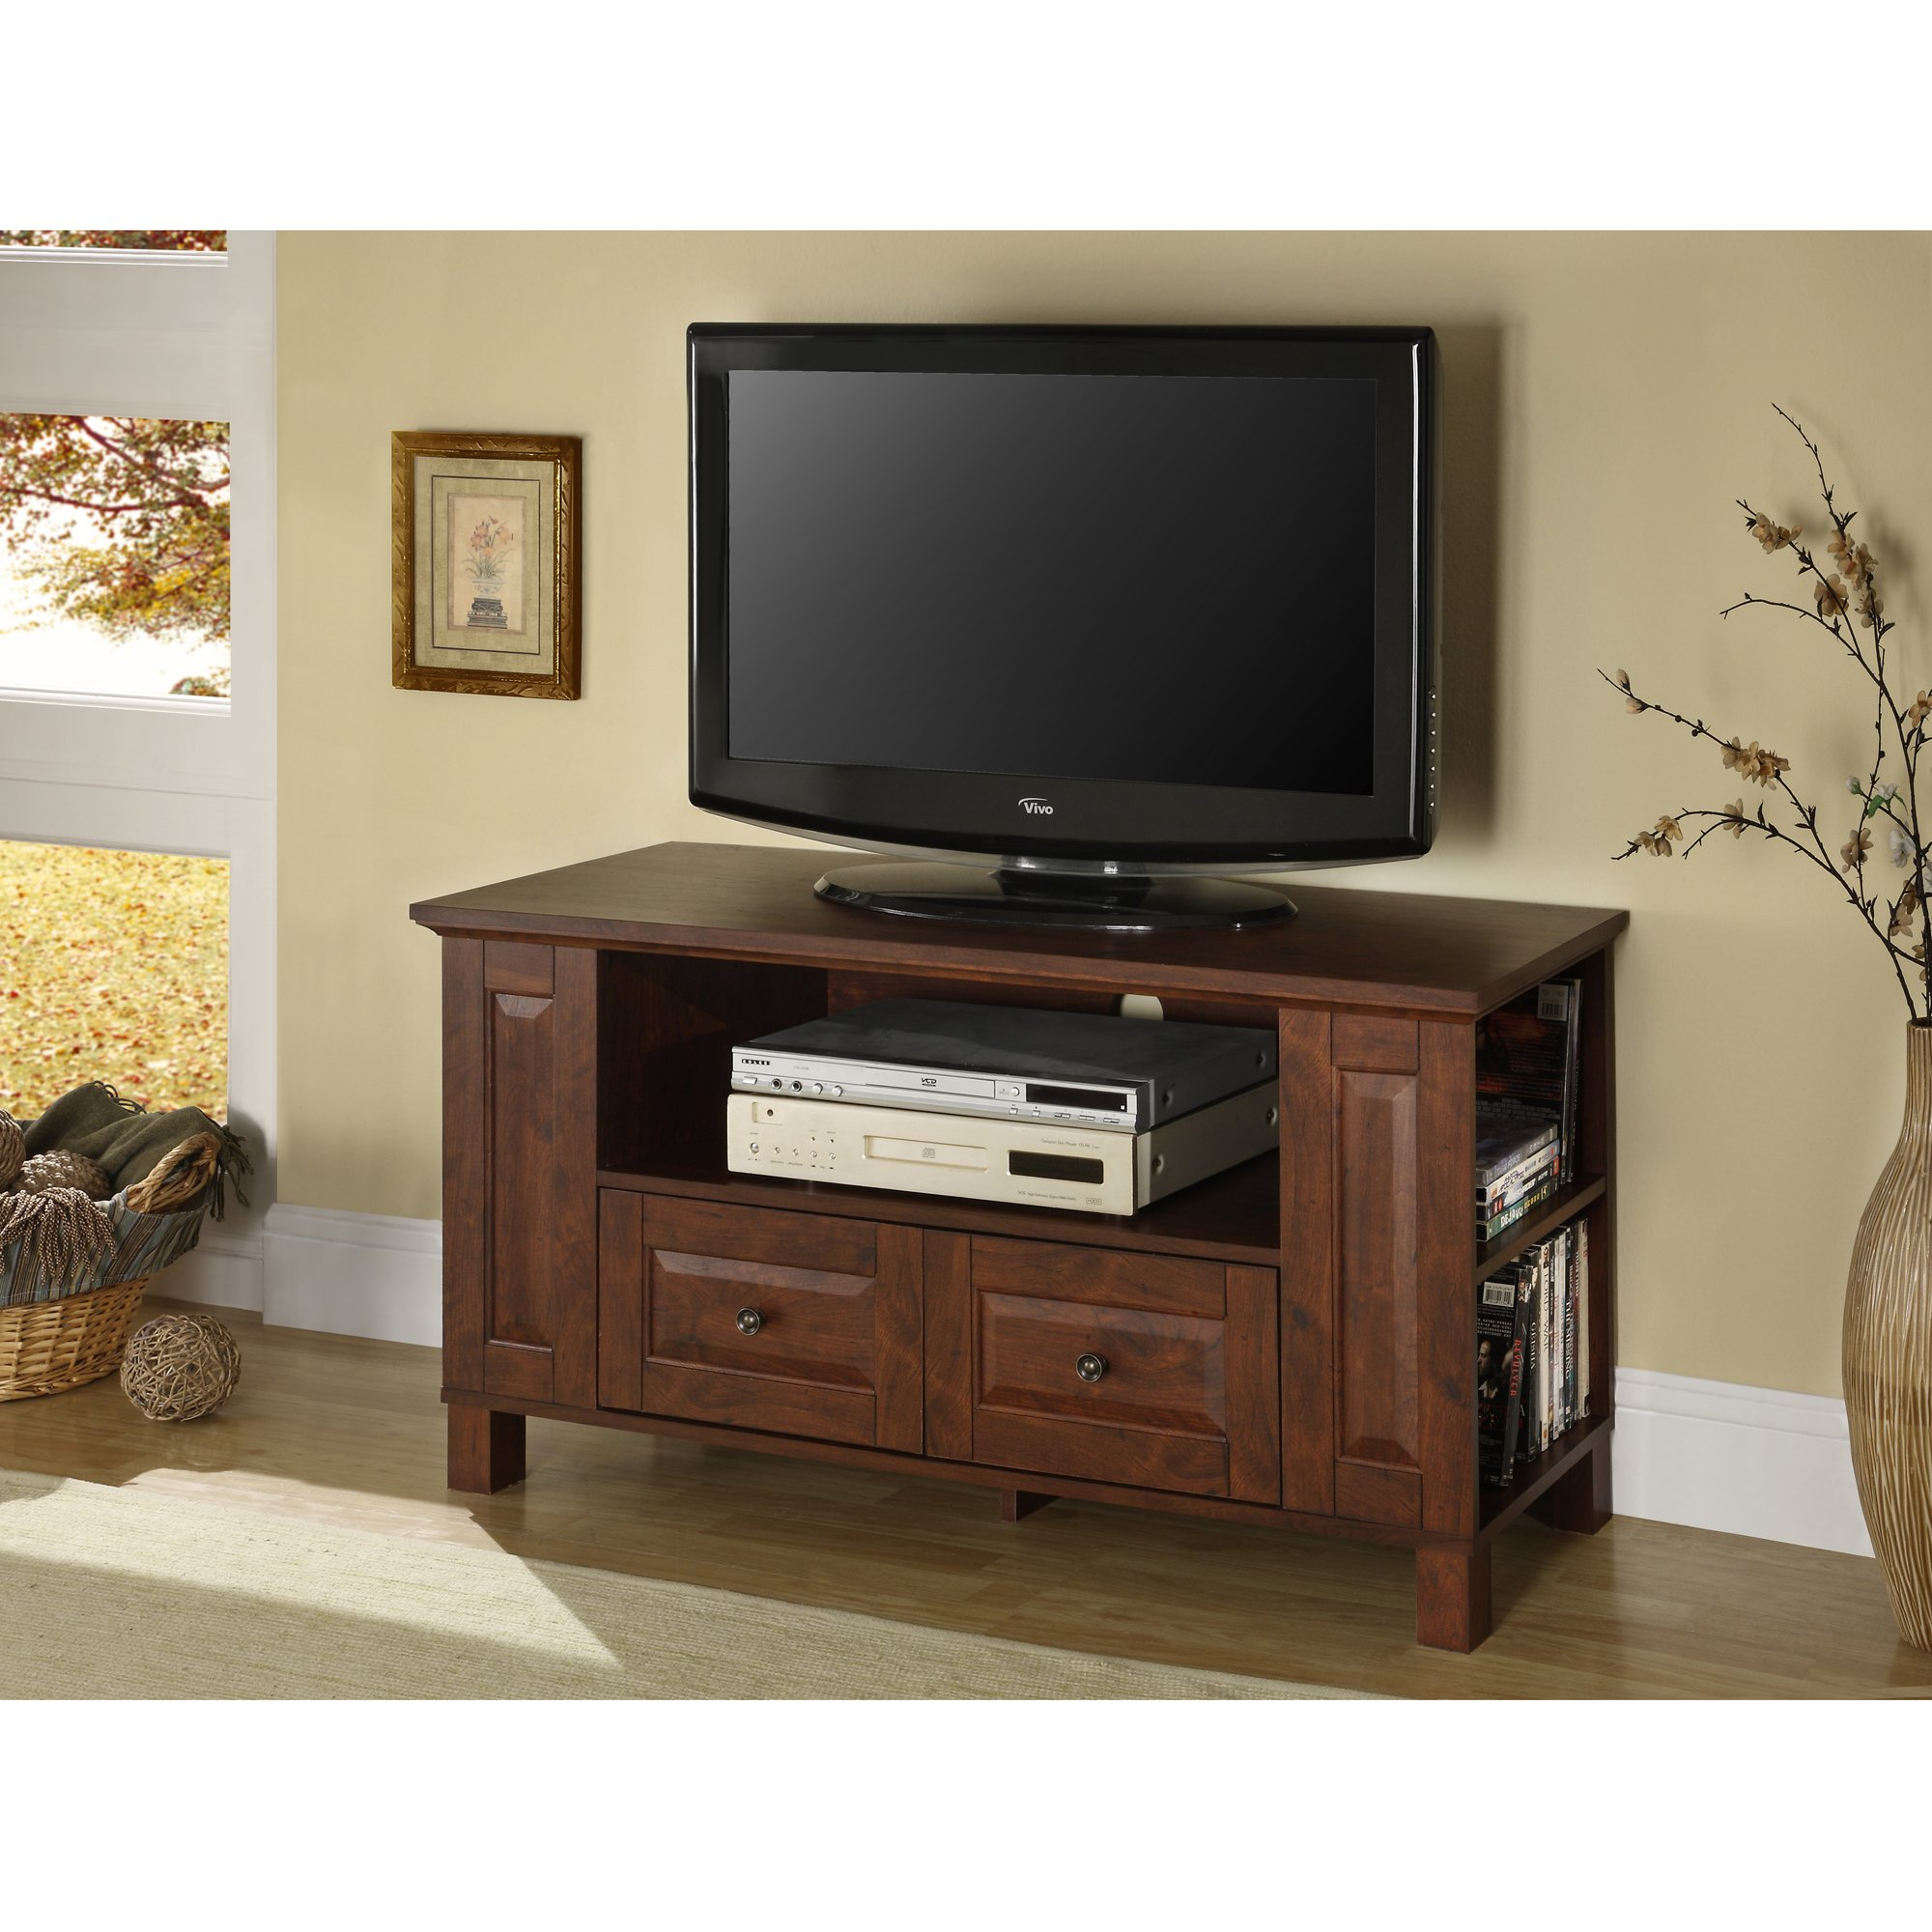 Walker Edison Furniture Company Traditional Wood TV Stand with Storage Drawers for TV's up to 48'' Living Room by Walker Edison Furniture Company